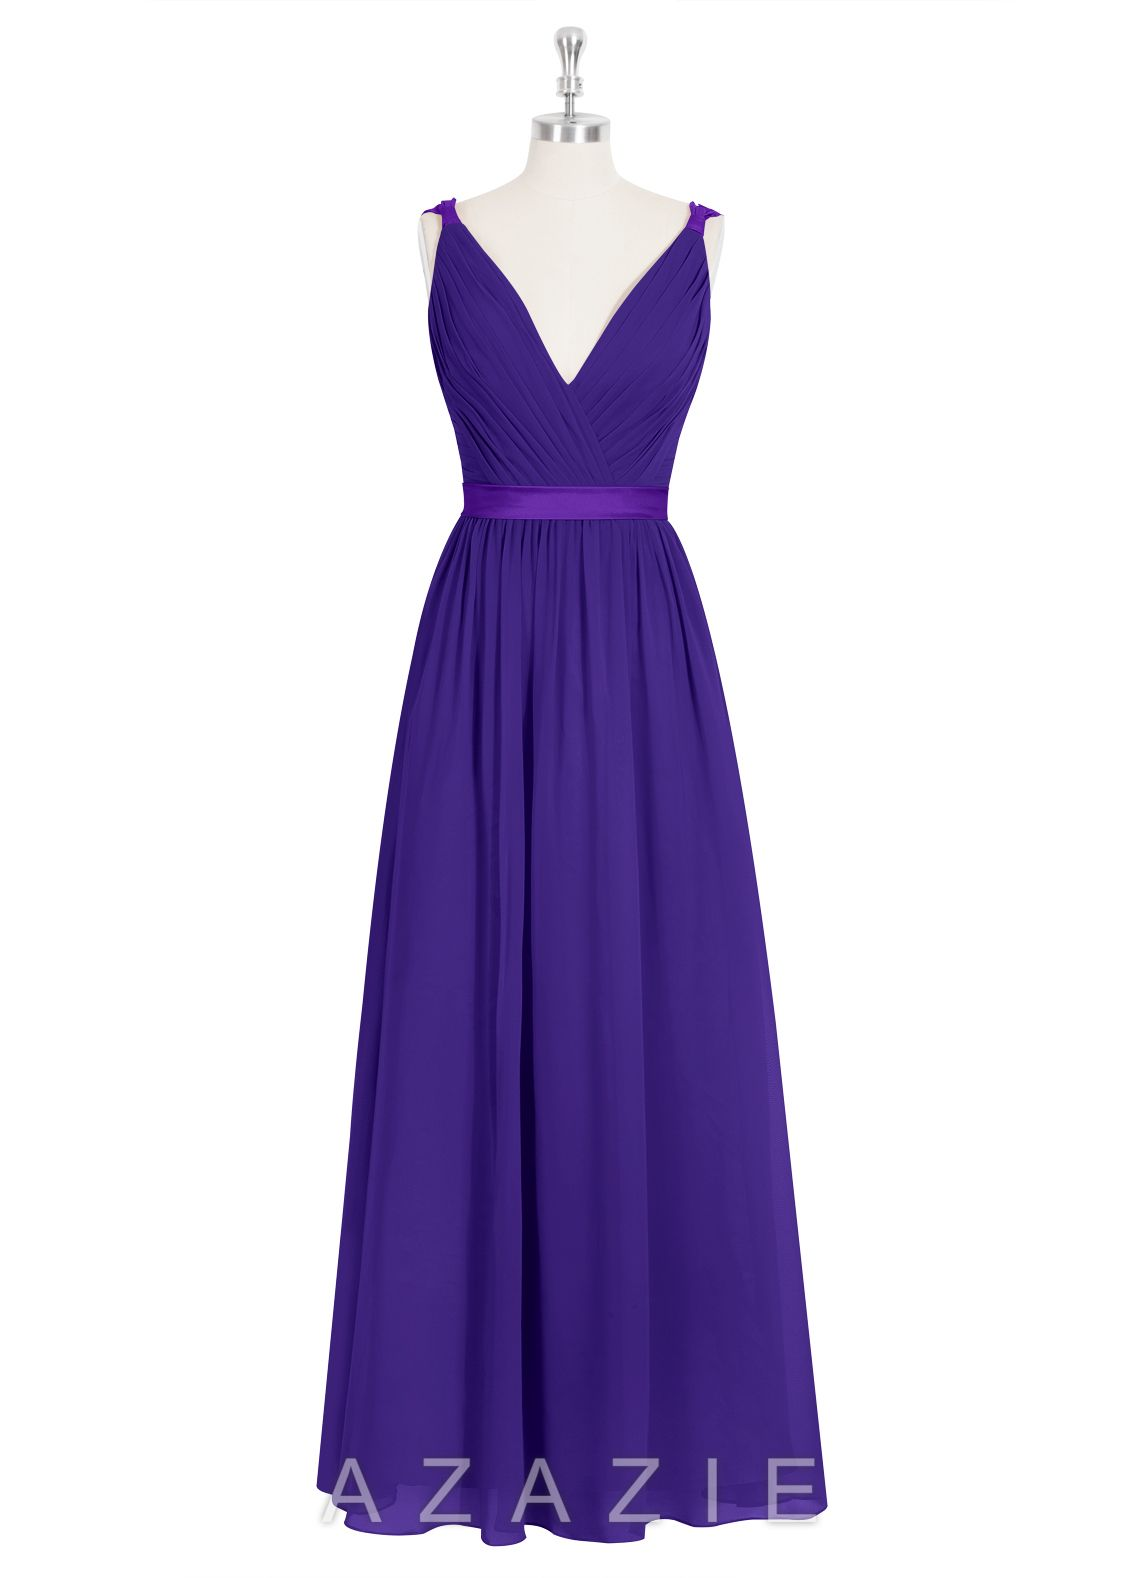 Shop Azazie Bridesmaid Dress - Leanna in Chiffon. Find the perfect made-to-order bridesmaid dresses for your bridal party in your favorite color, style and fabric at Azazie.